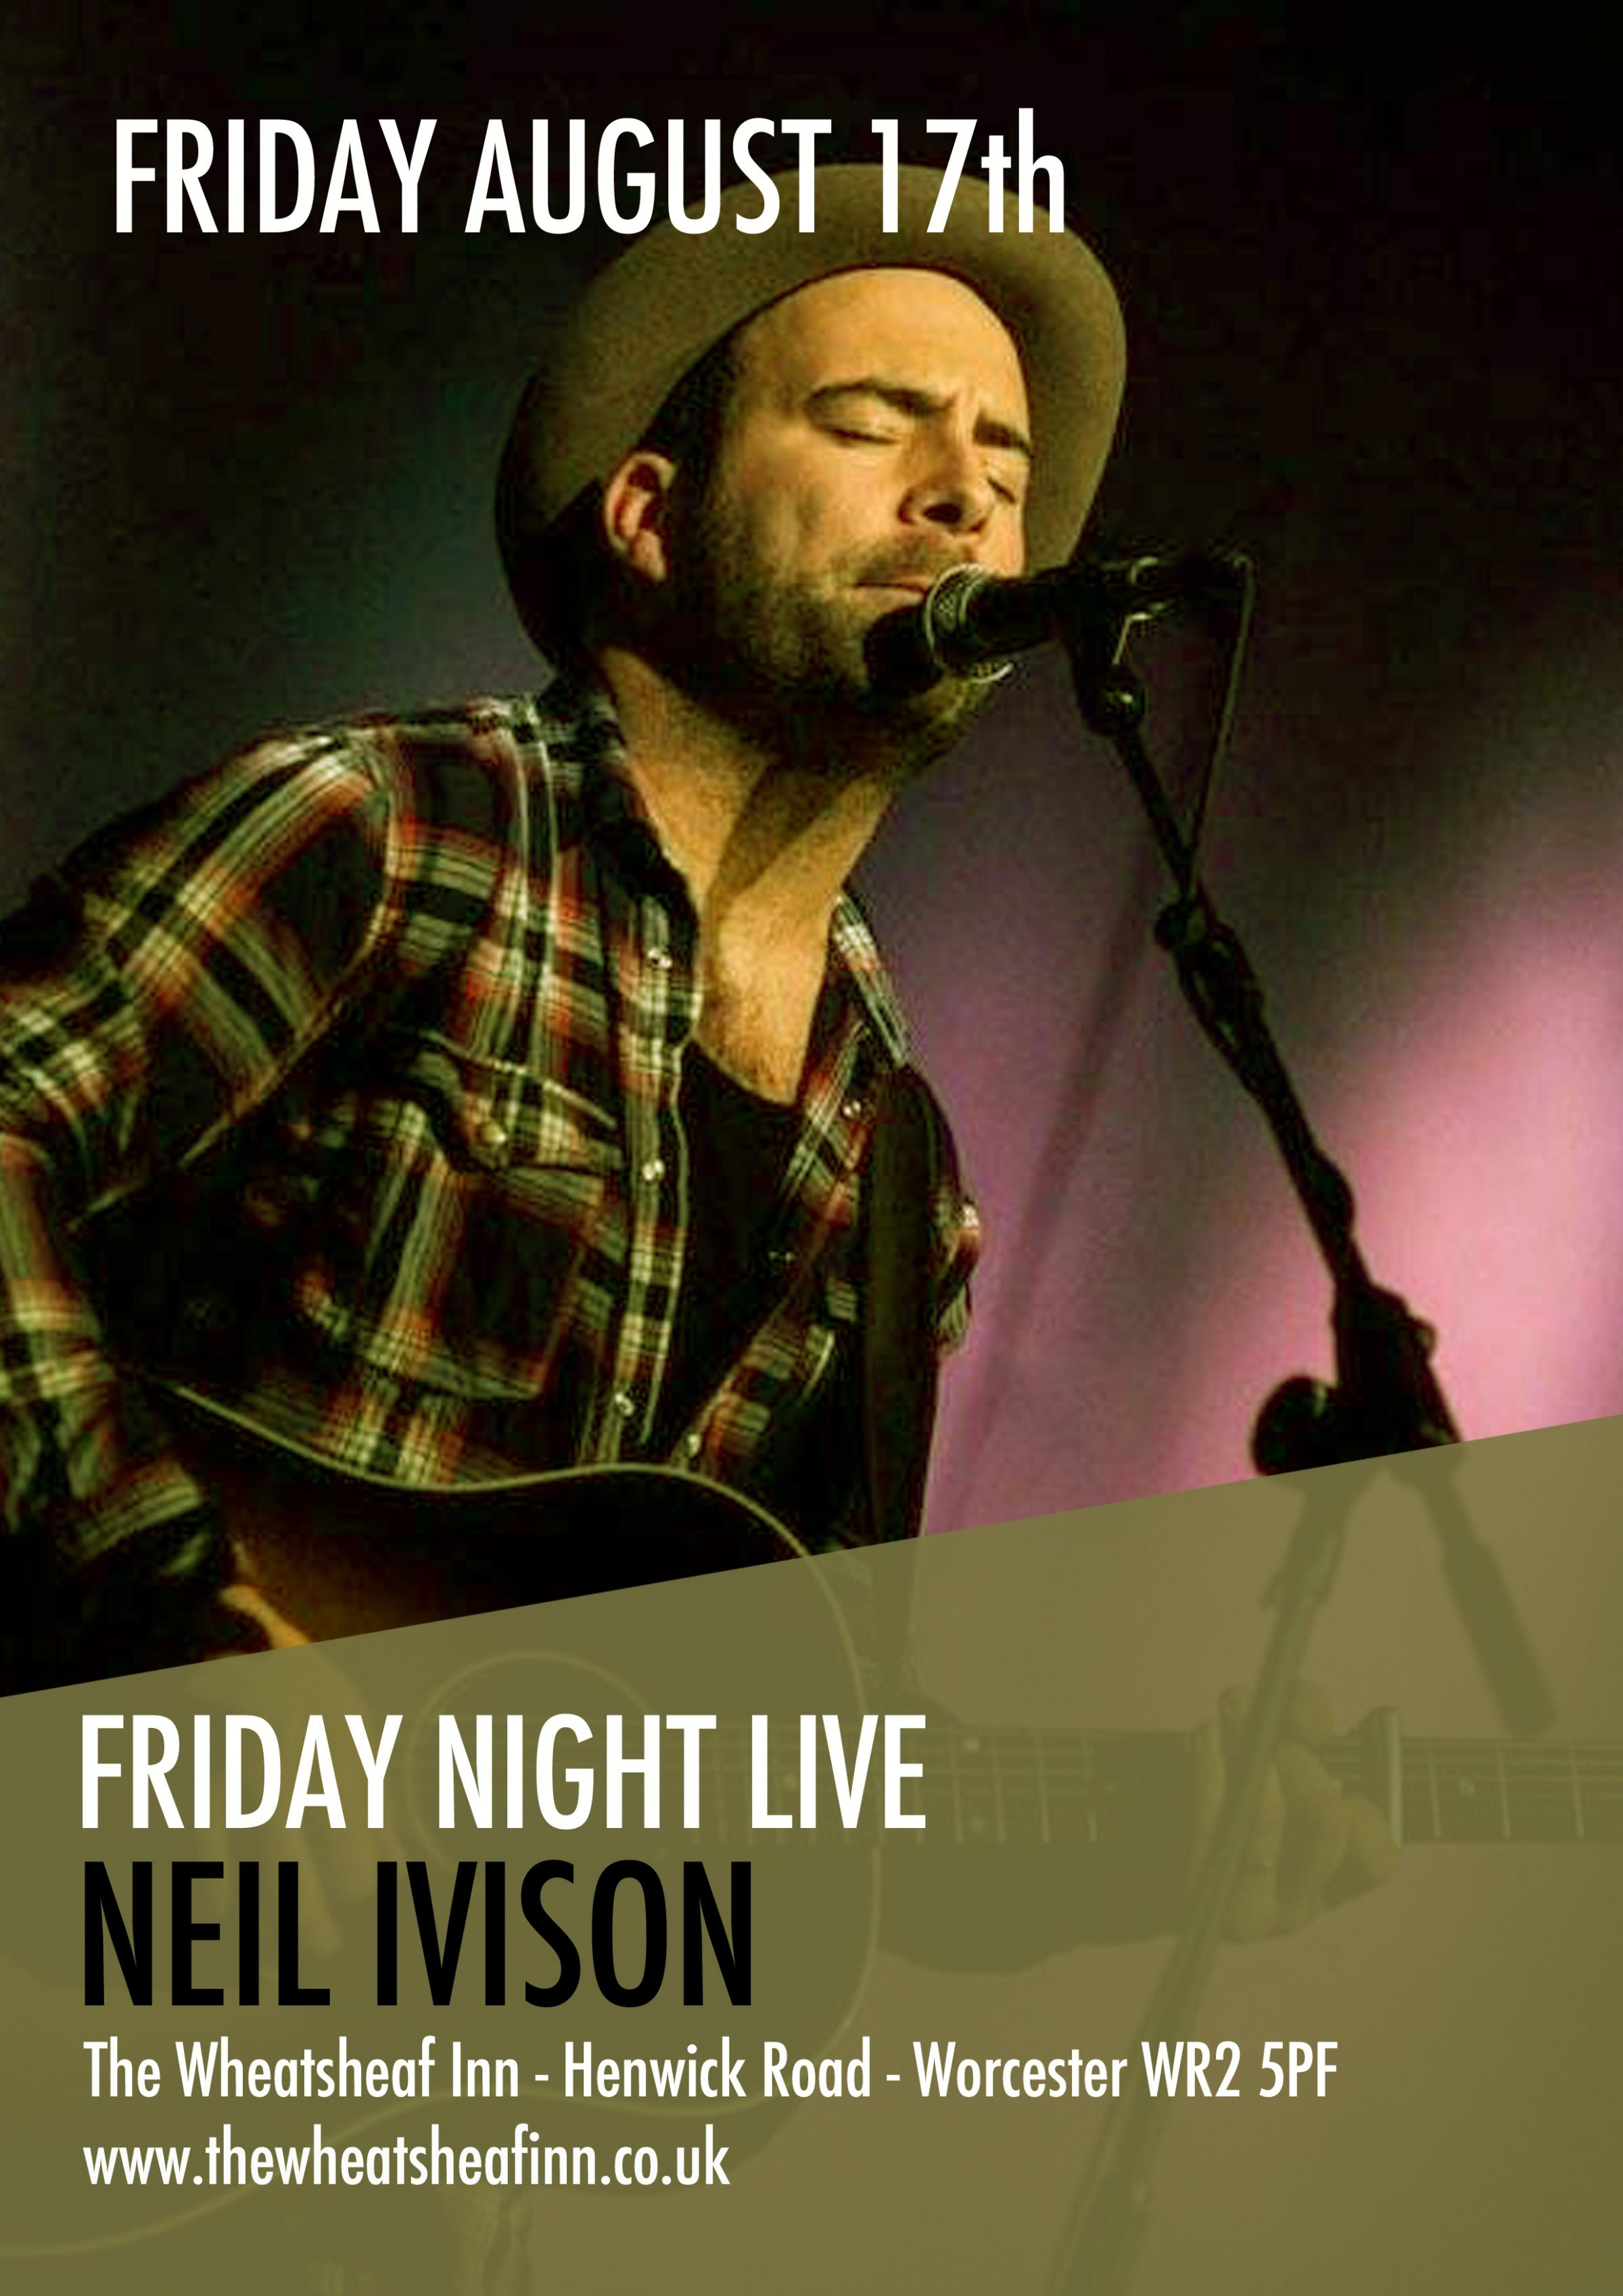 Friday Night Live with Neil Ivison